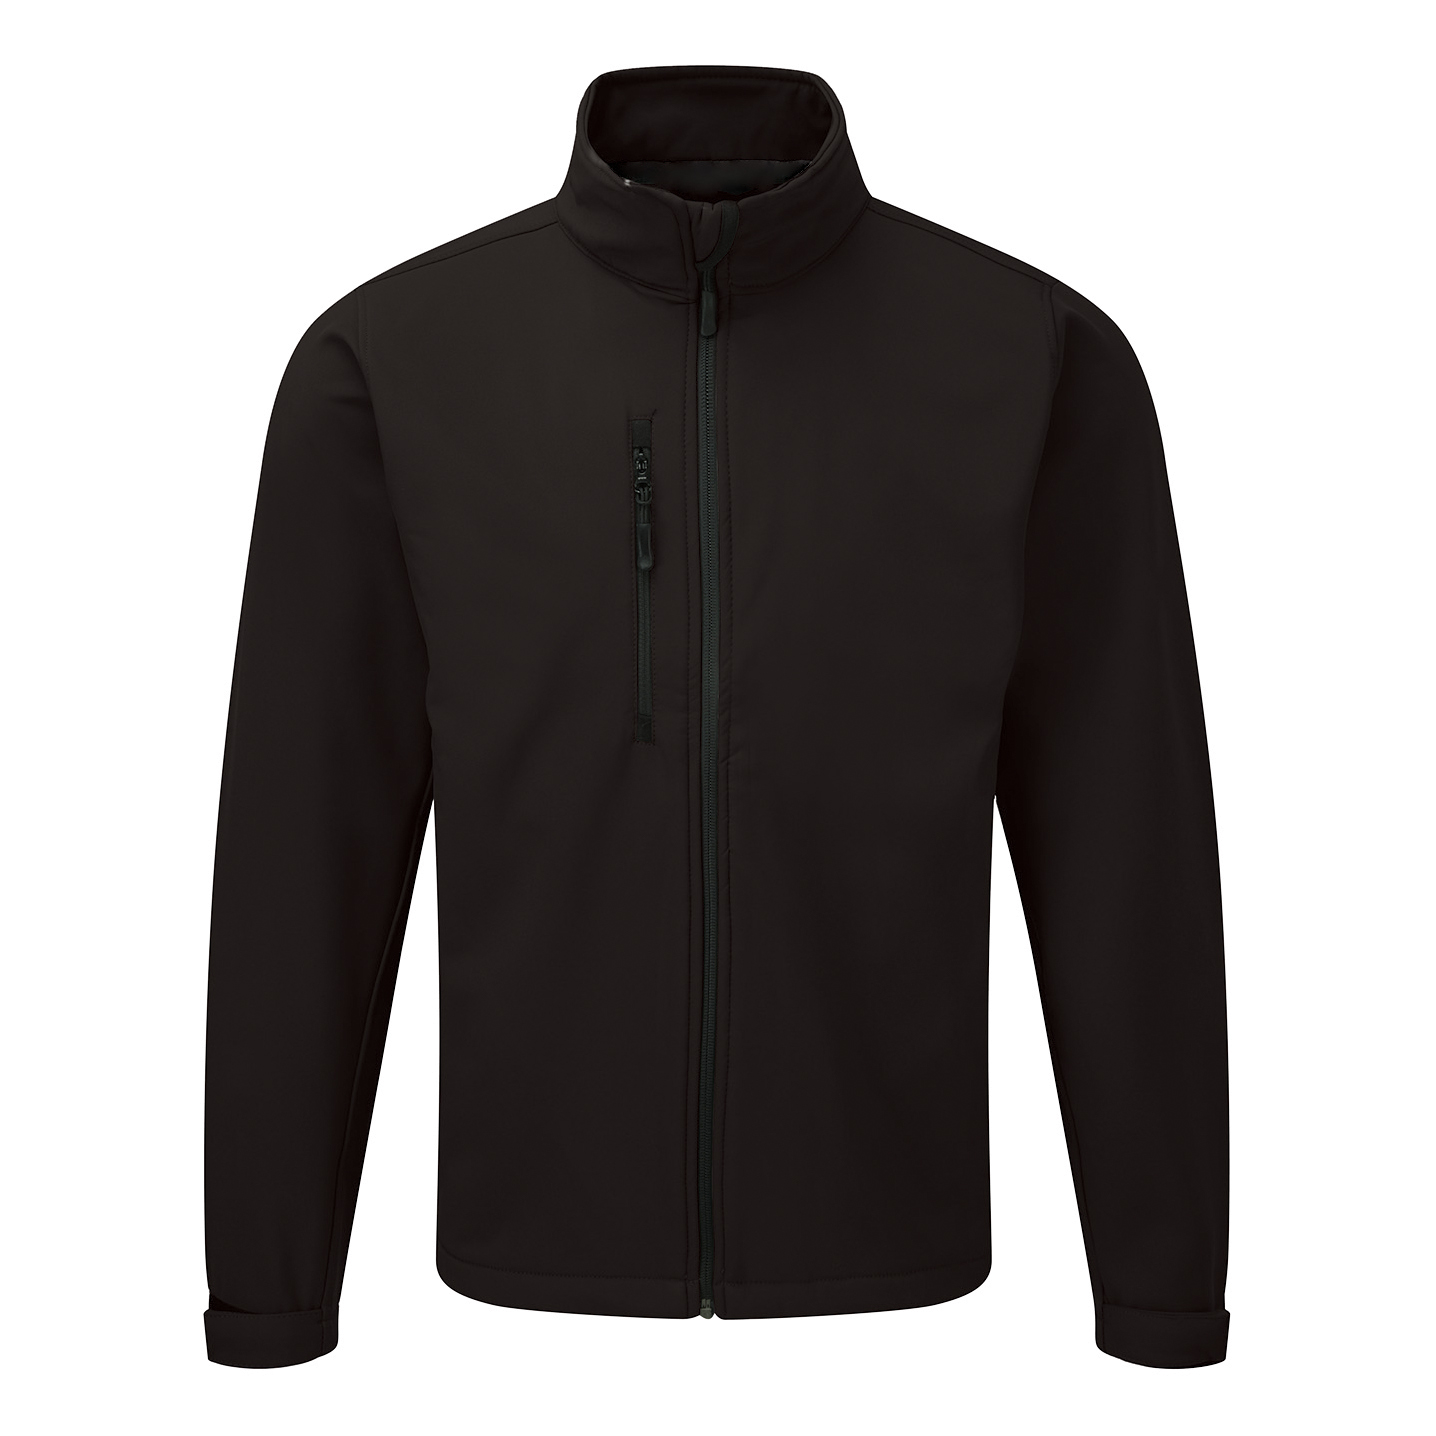 Jacket Soft Shell Water Resistant Breathable 320gsm Size 2XL Black